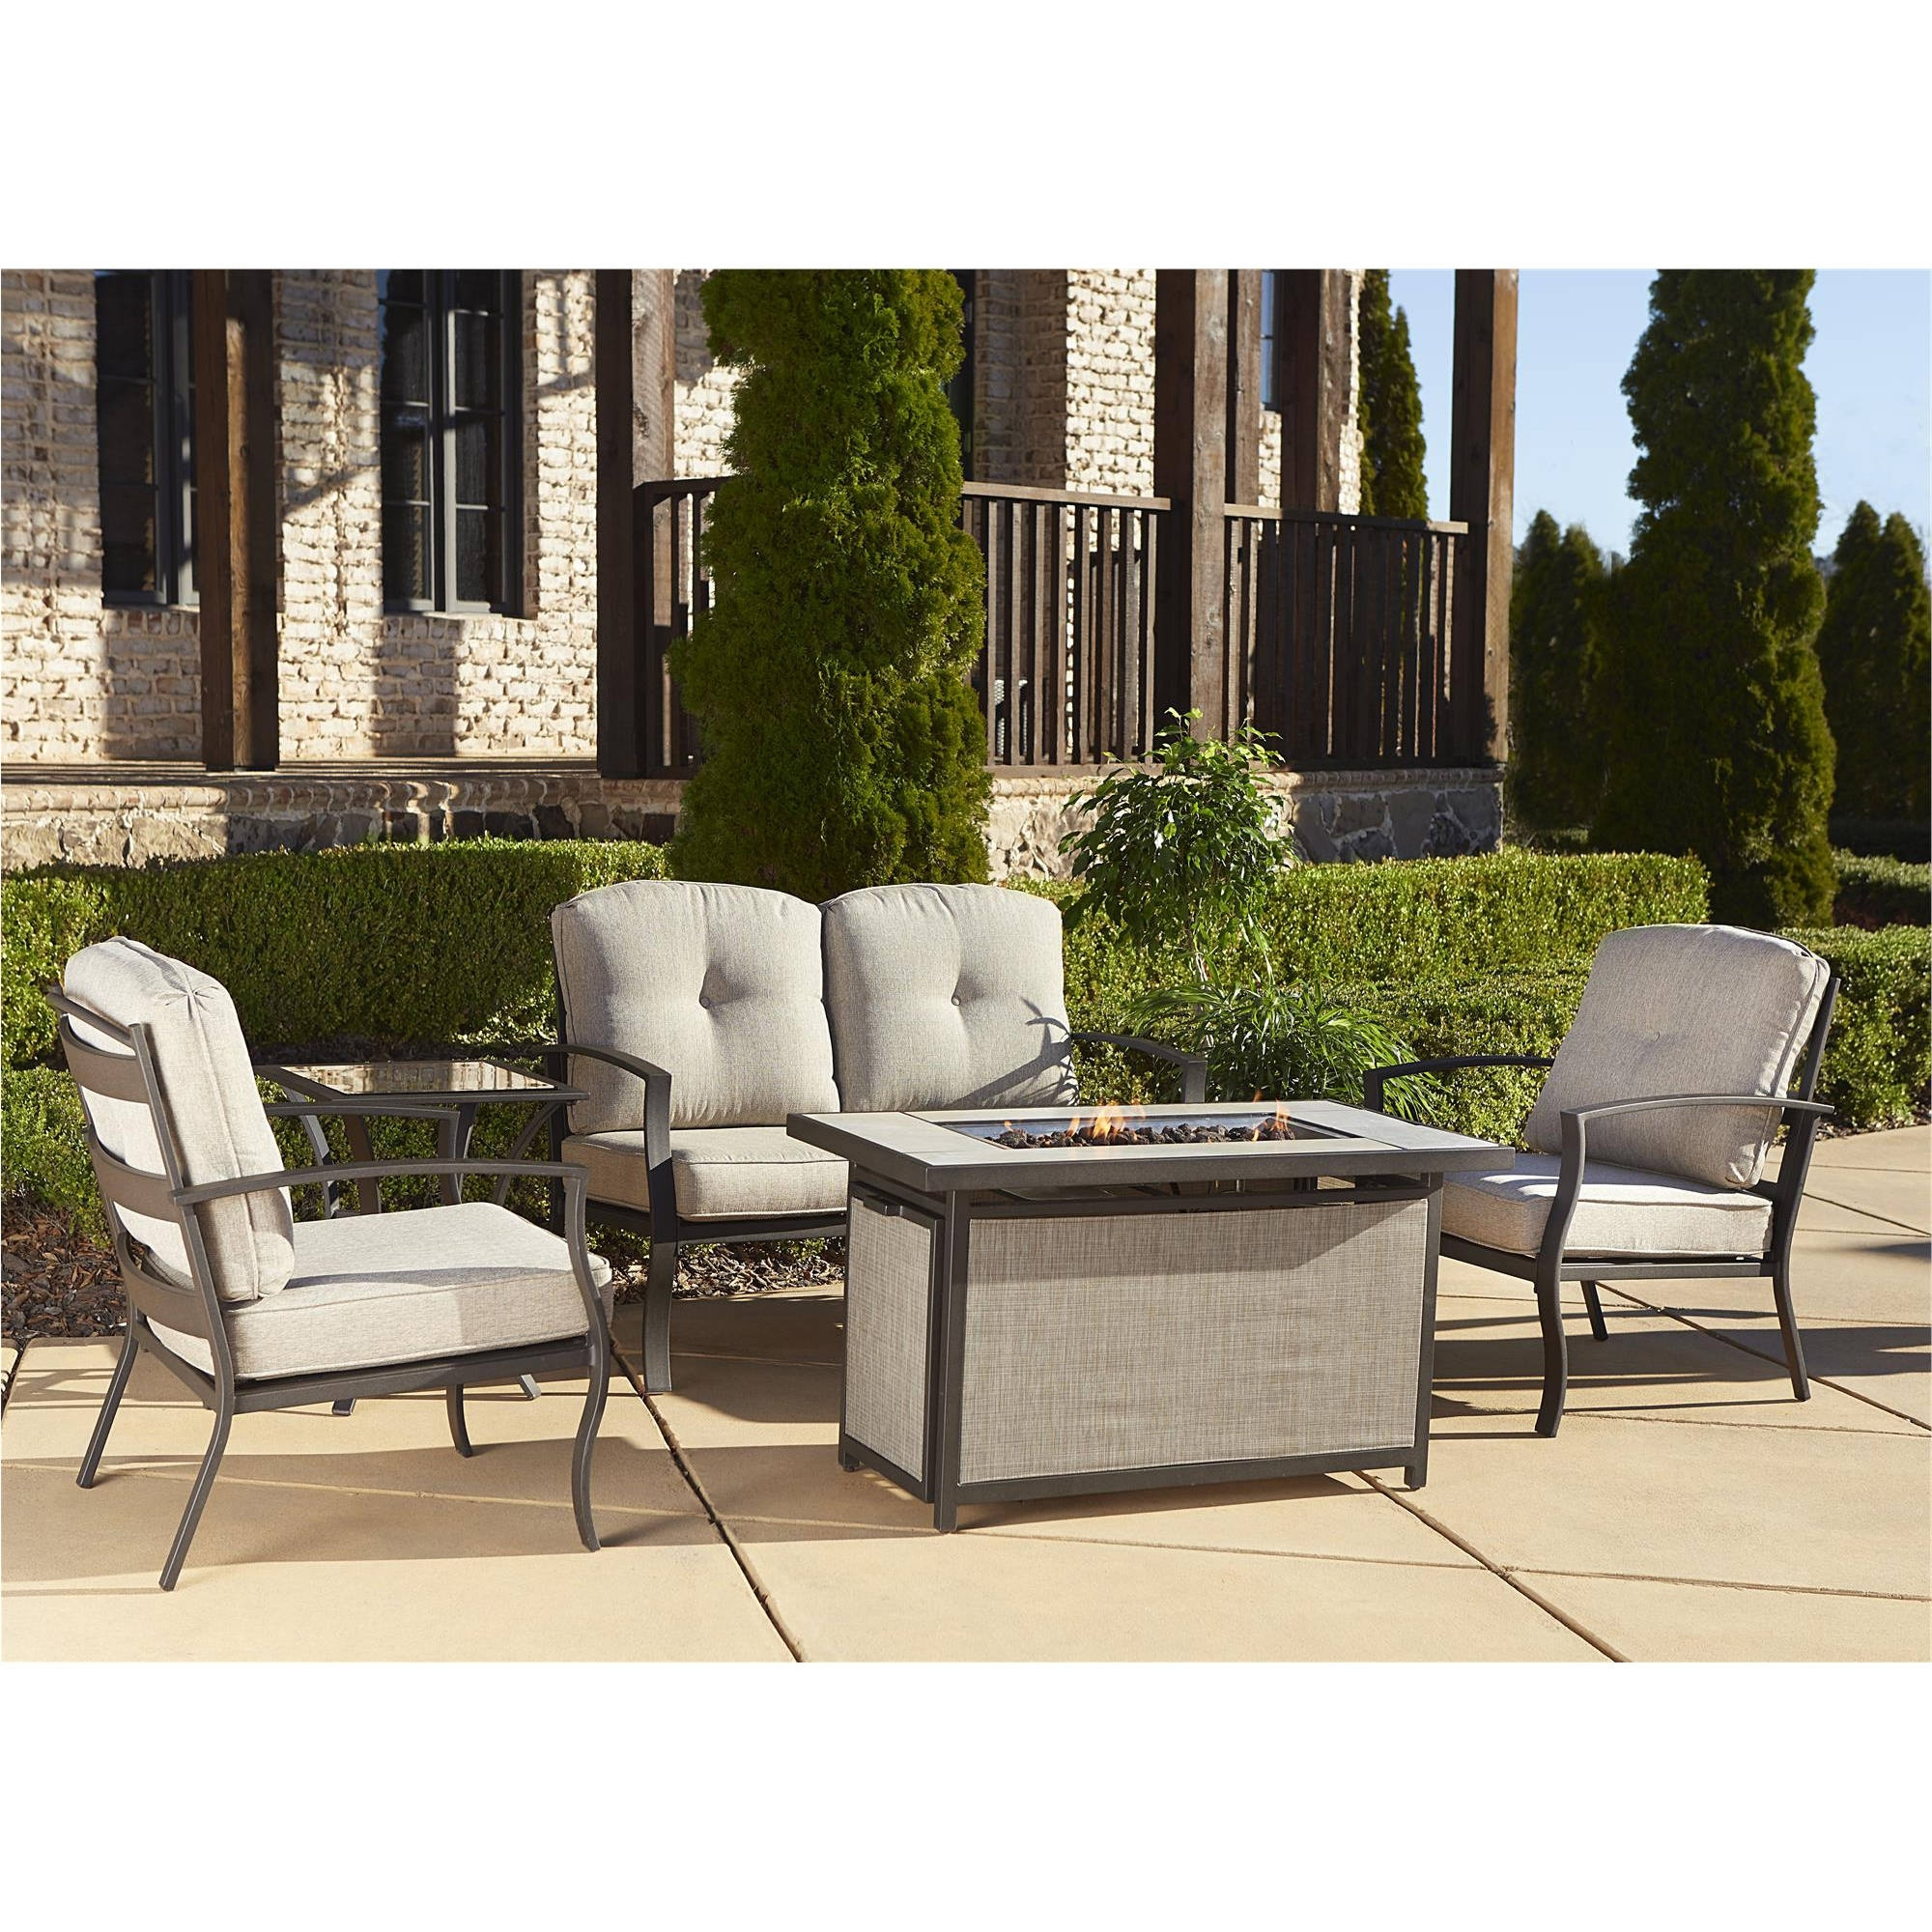 Patio Conversation Sets With Propane Fire Pit With Well Liked Best Of Patio Furniture Sets With Gas Fire Pit Conversation Sets (View 9 of 15)